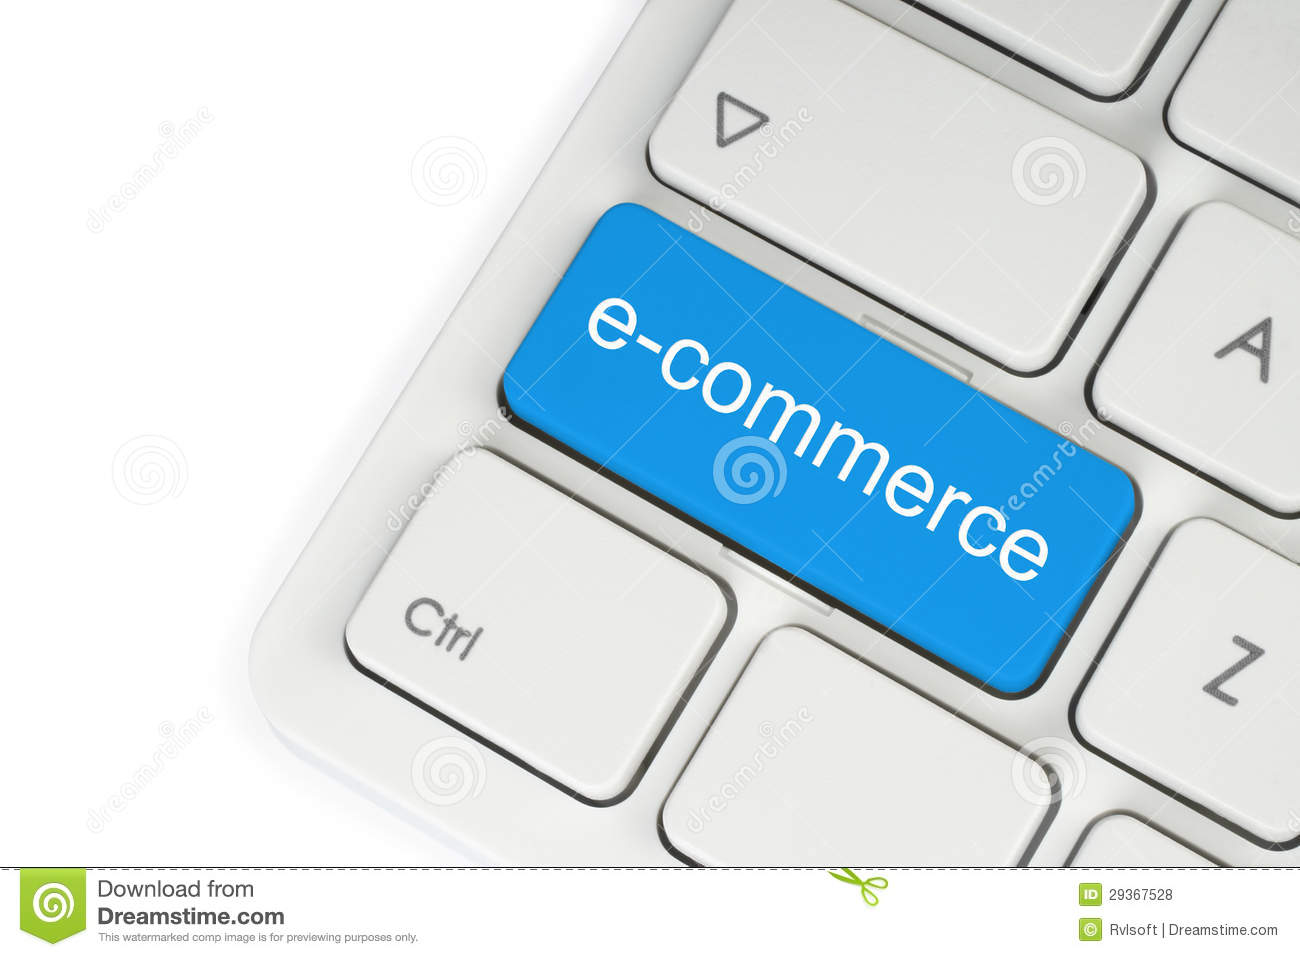 What is Blue Martini (Escalate) e commerce software suite?